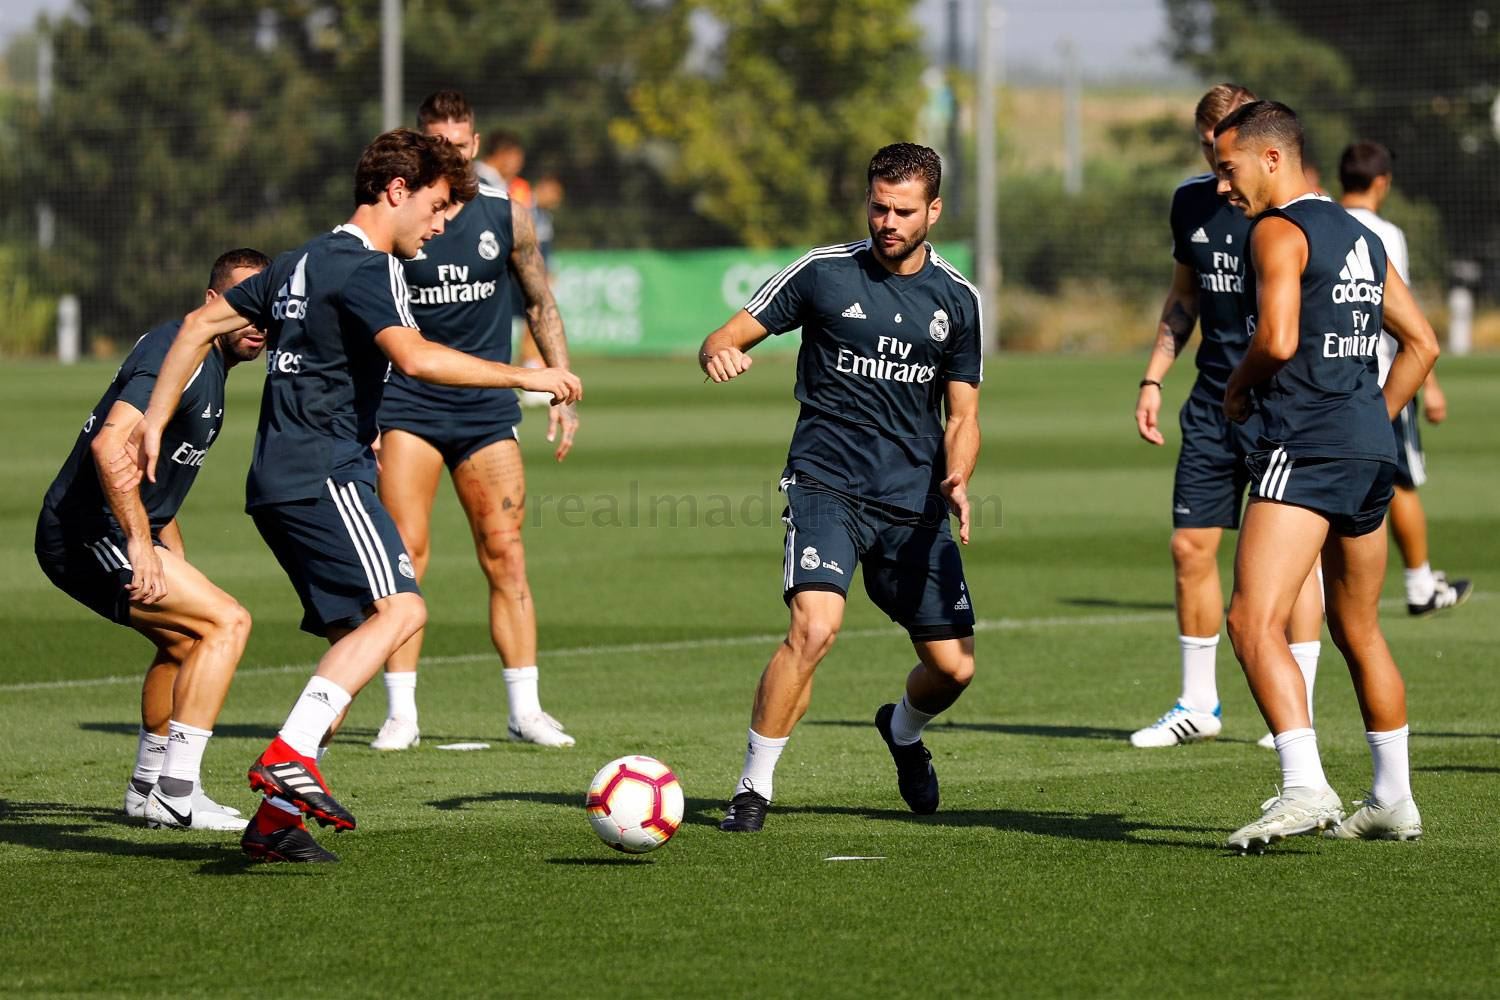 Real Madrid - Entrenamiento del Real Madrid - 14-09-2018